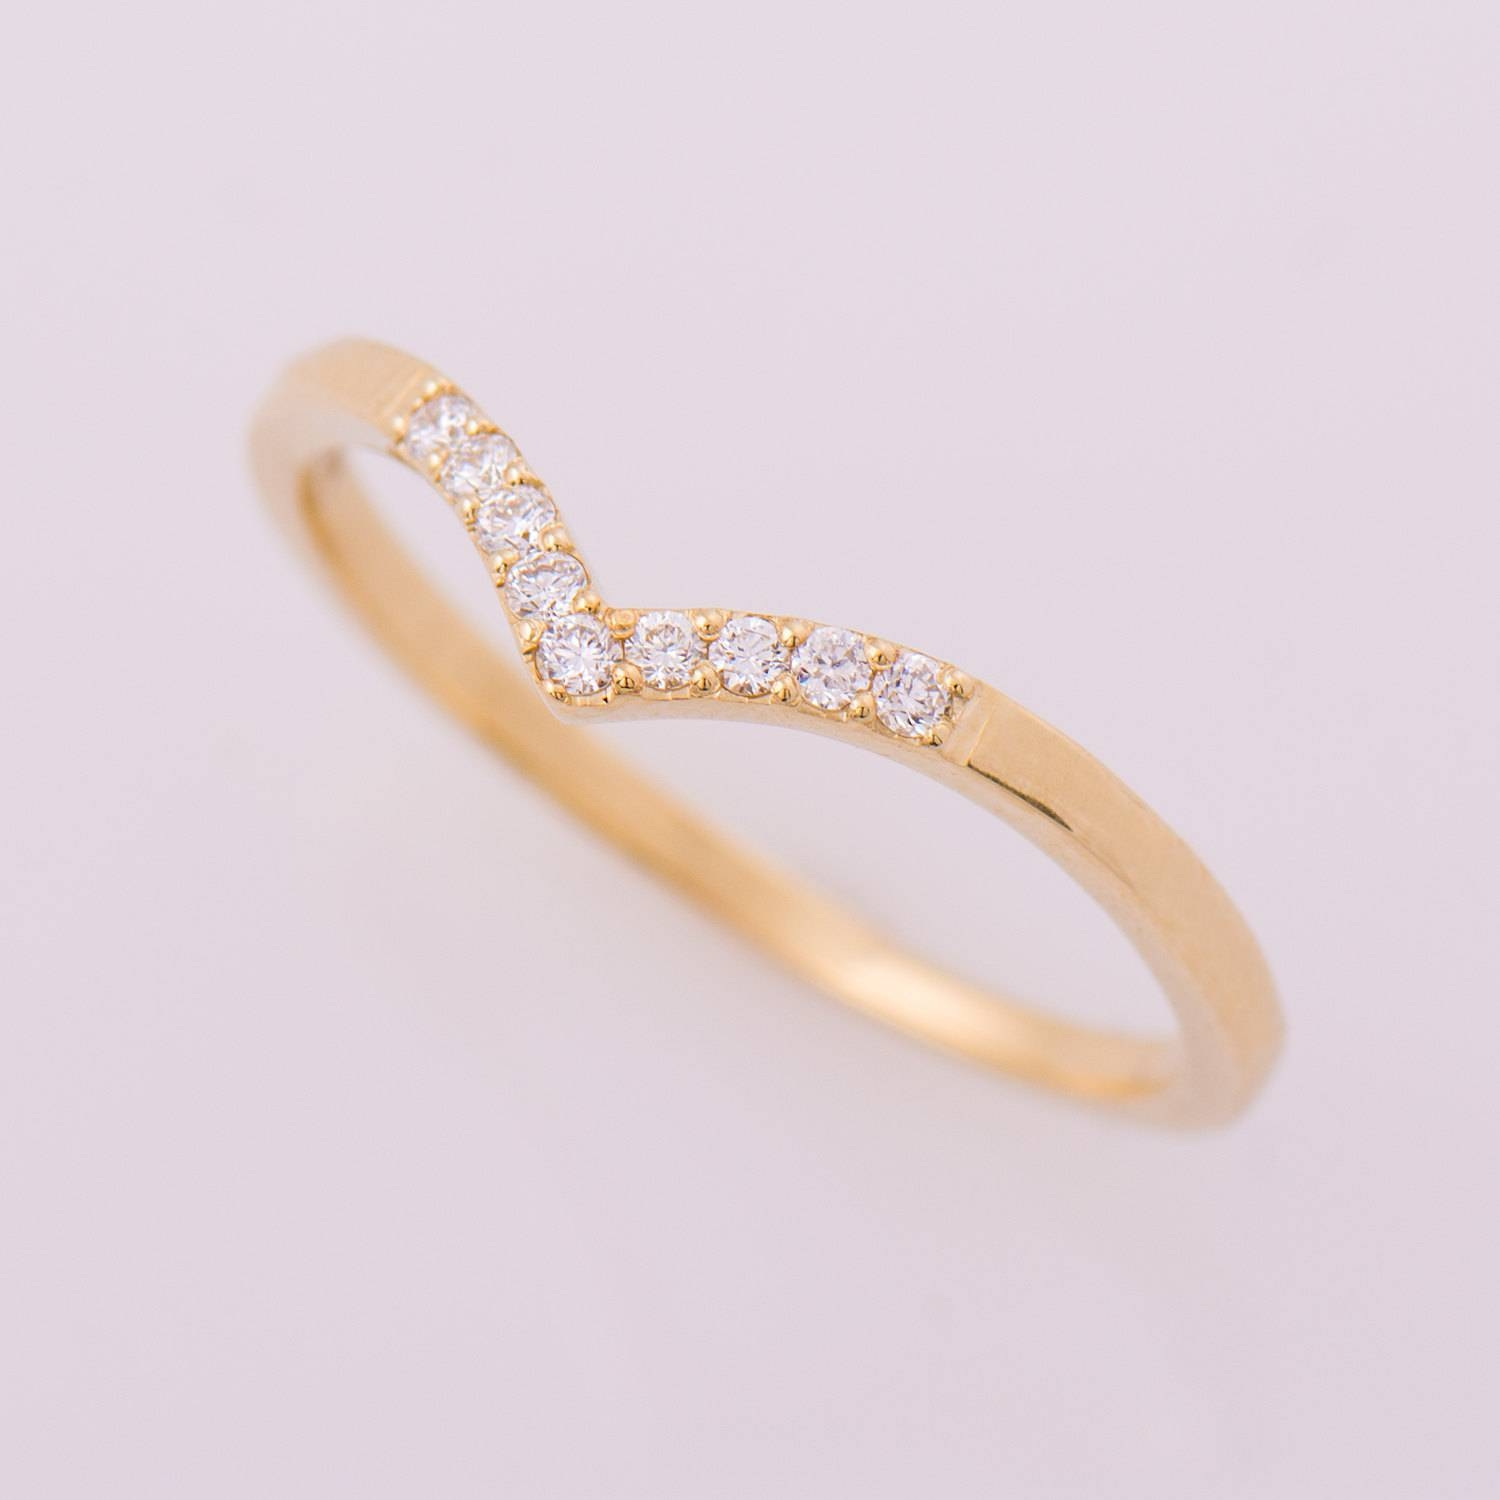 Chevron Ring 14K Yellow Gold Diamonds Ring V Shaped Ring Pertaining To Dainty Wedding Bands (Gallery 10 of 15)